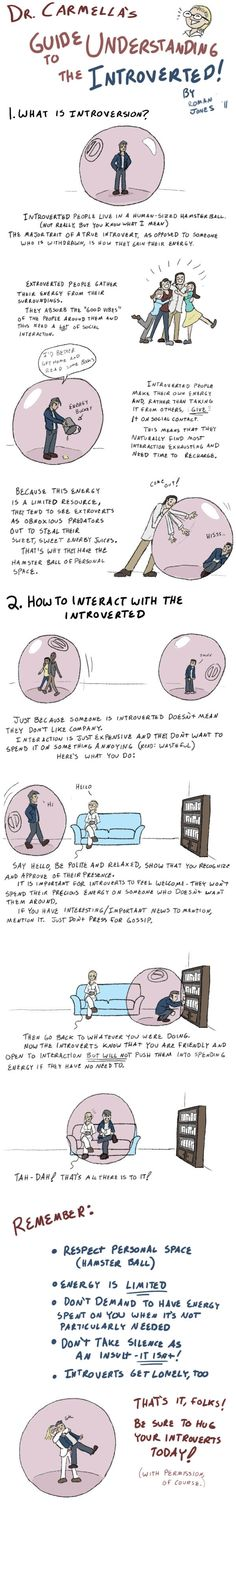 We all wish everyone could just follow the rules for living with an introvert. | 11 Comics Every Introvert Will Understand